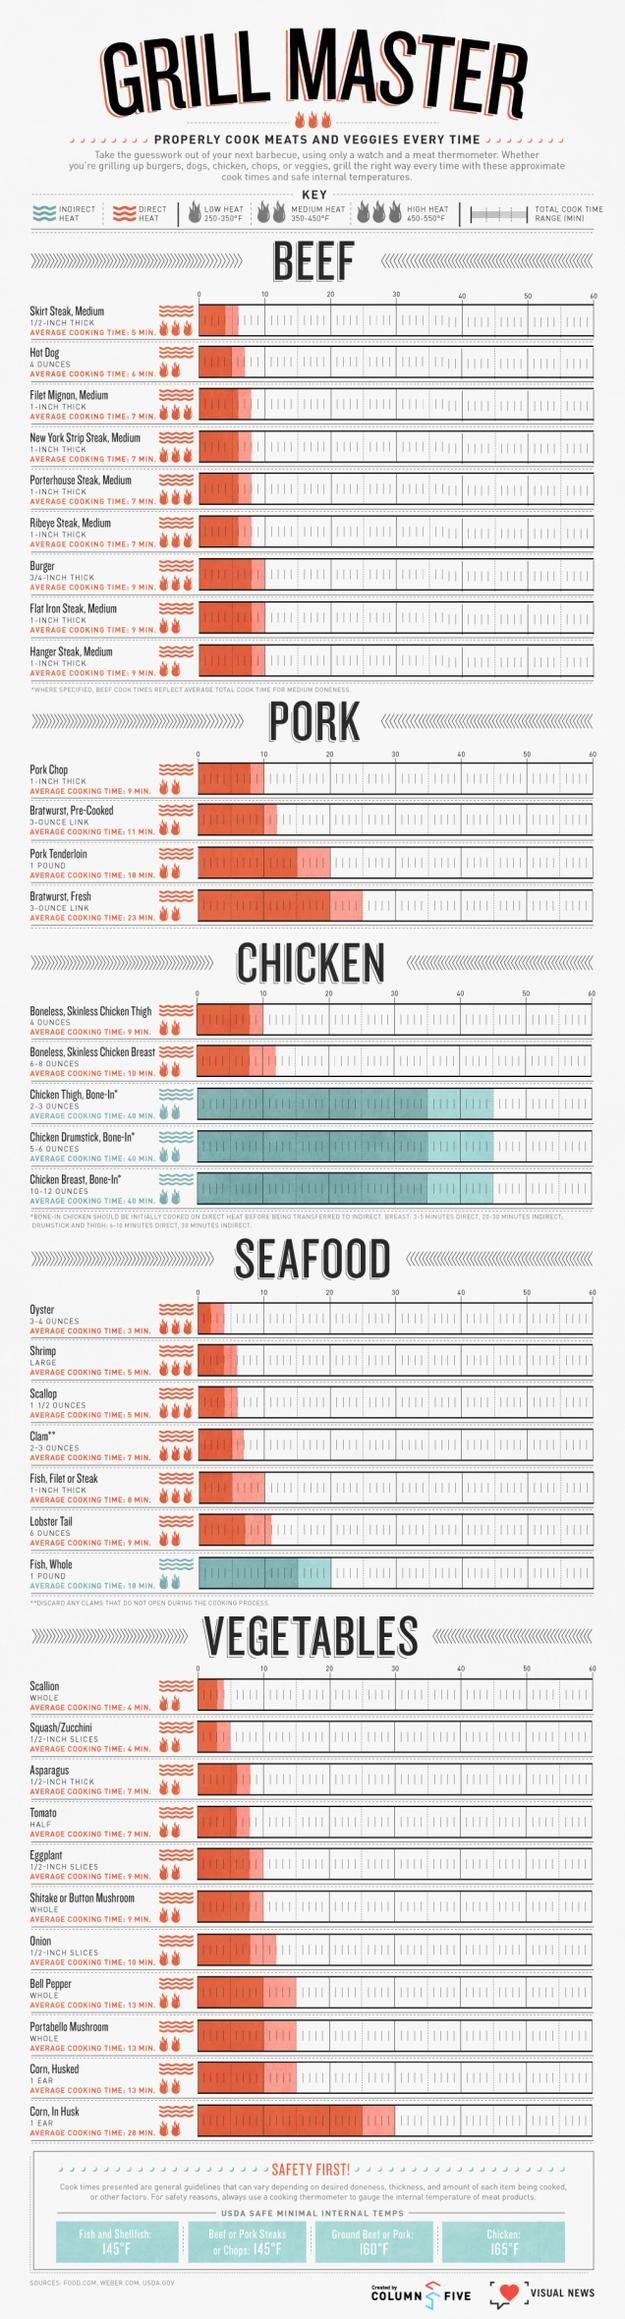 Grill Master - Proper Times & Temperatures - 27 Beautiful Infographics that teach you how to cook - Album on Imgur